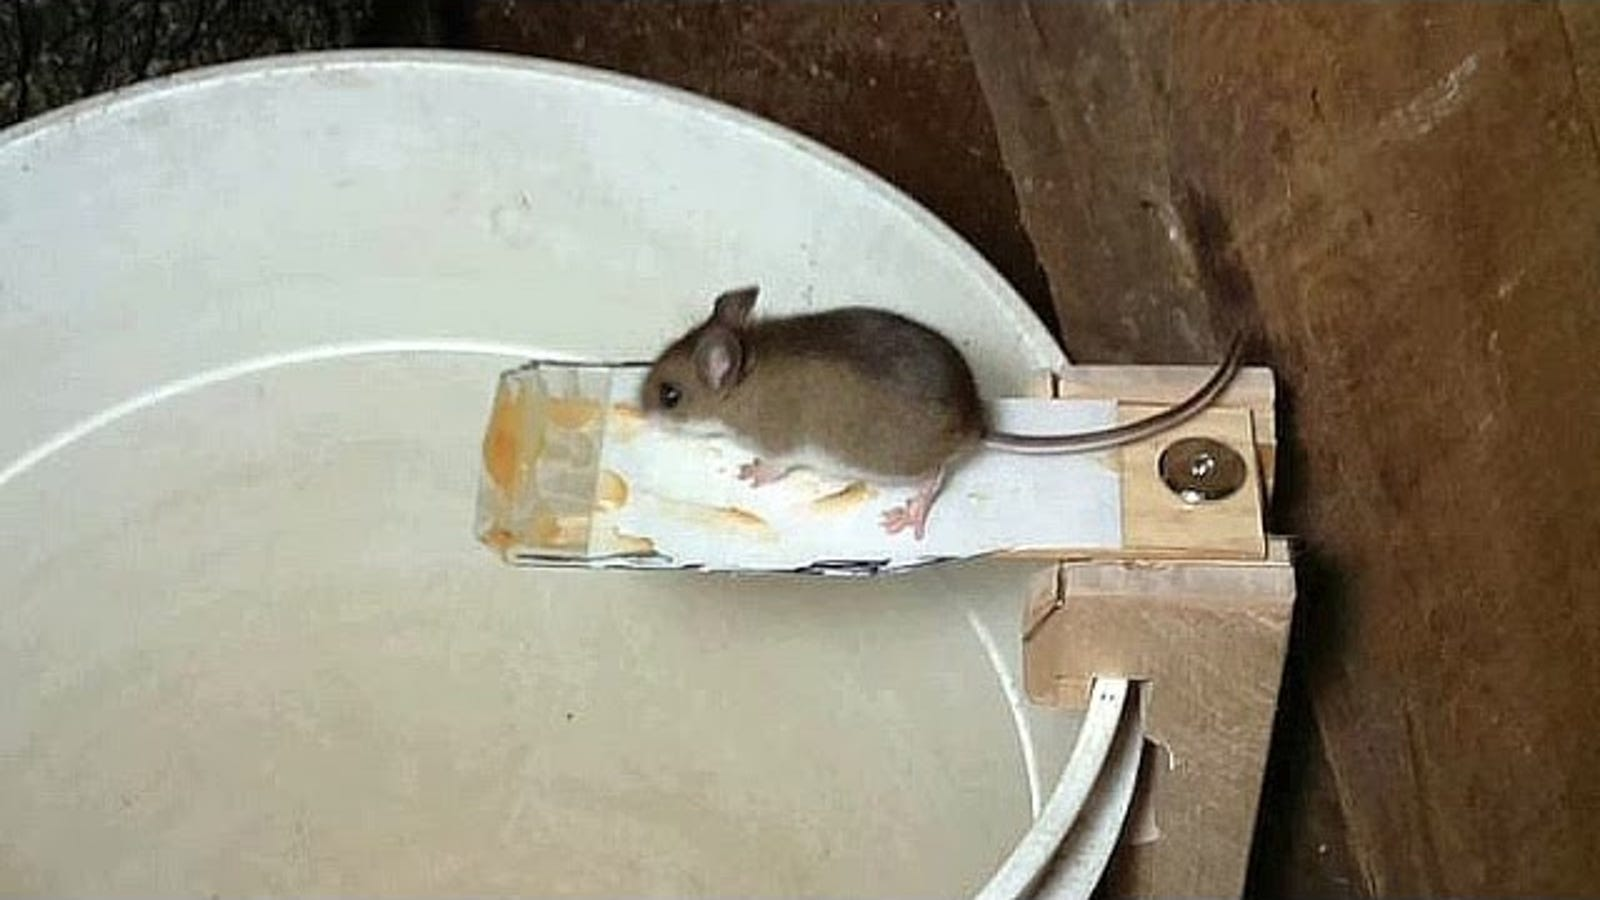 Ruthlessly Efficient Trap Proves Mice Are Dumb